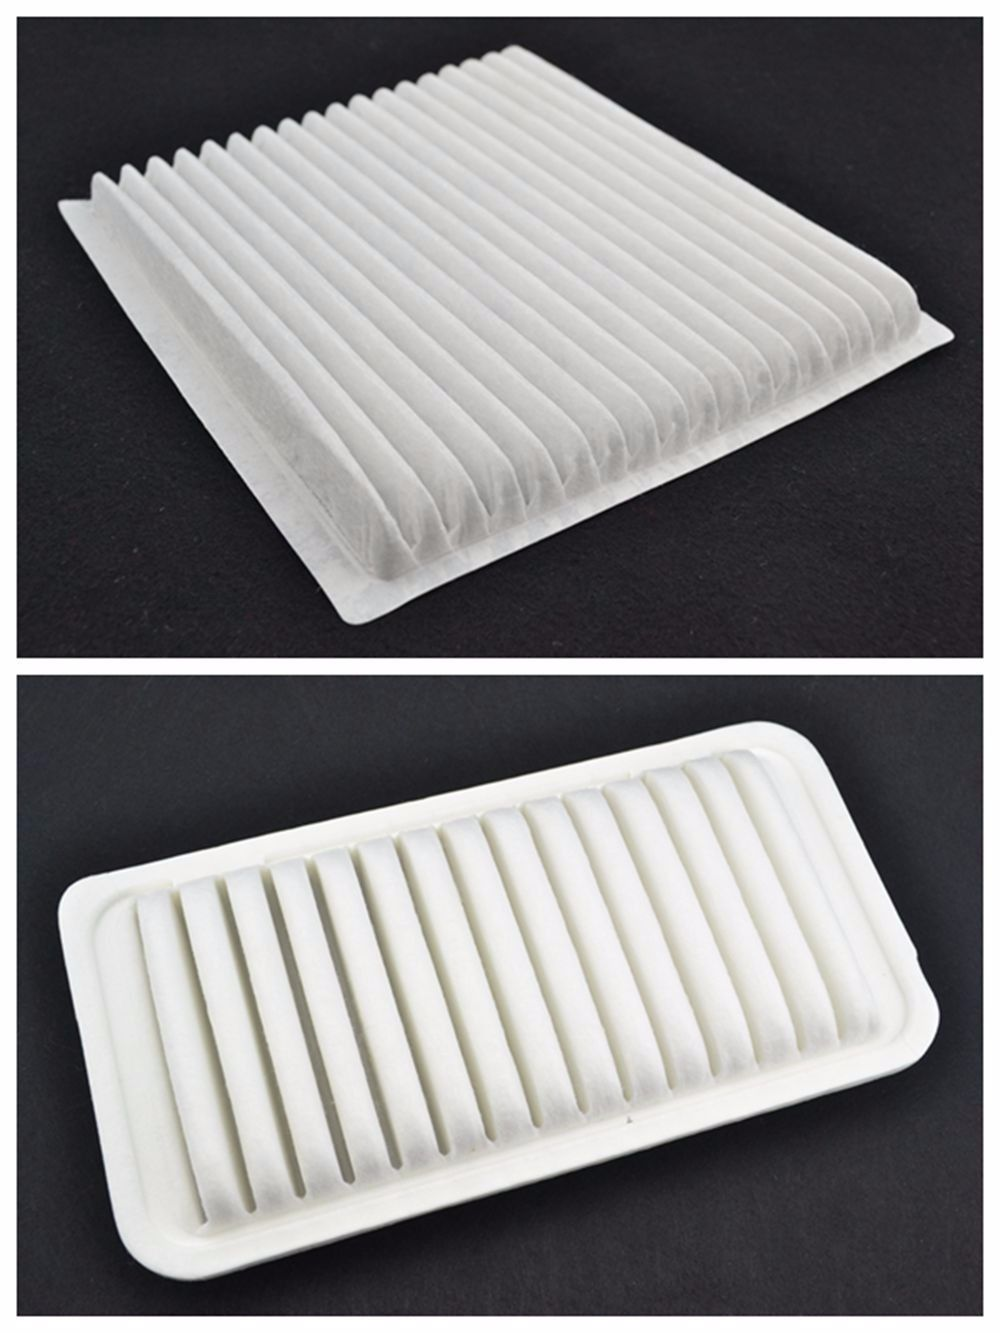 Bbq fuka oem quality engine air filter cabin air filter fit for toyota matrix corolla